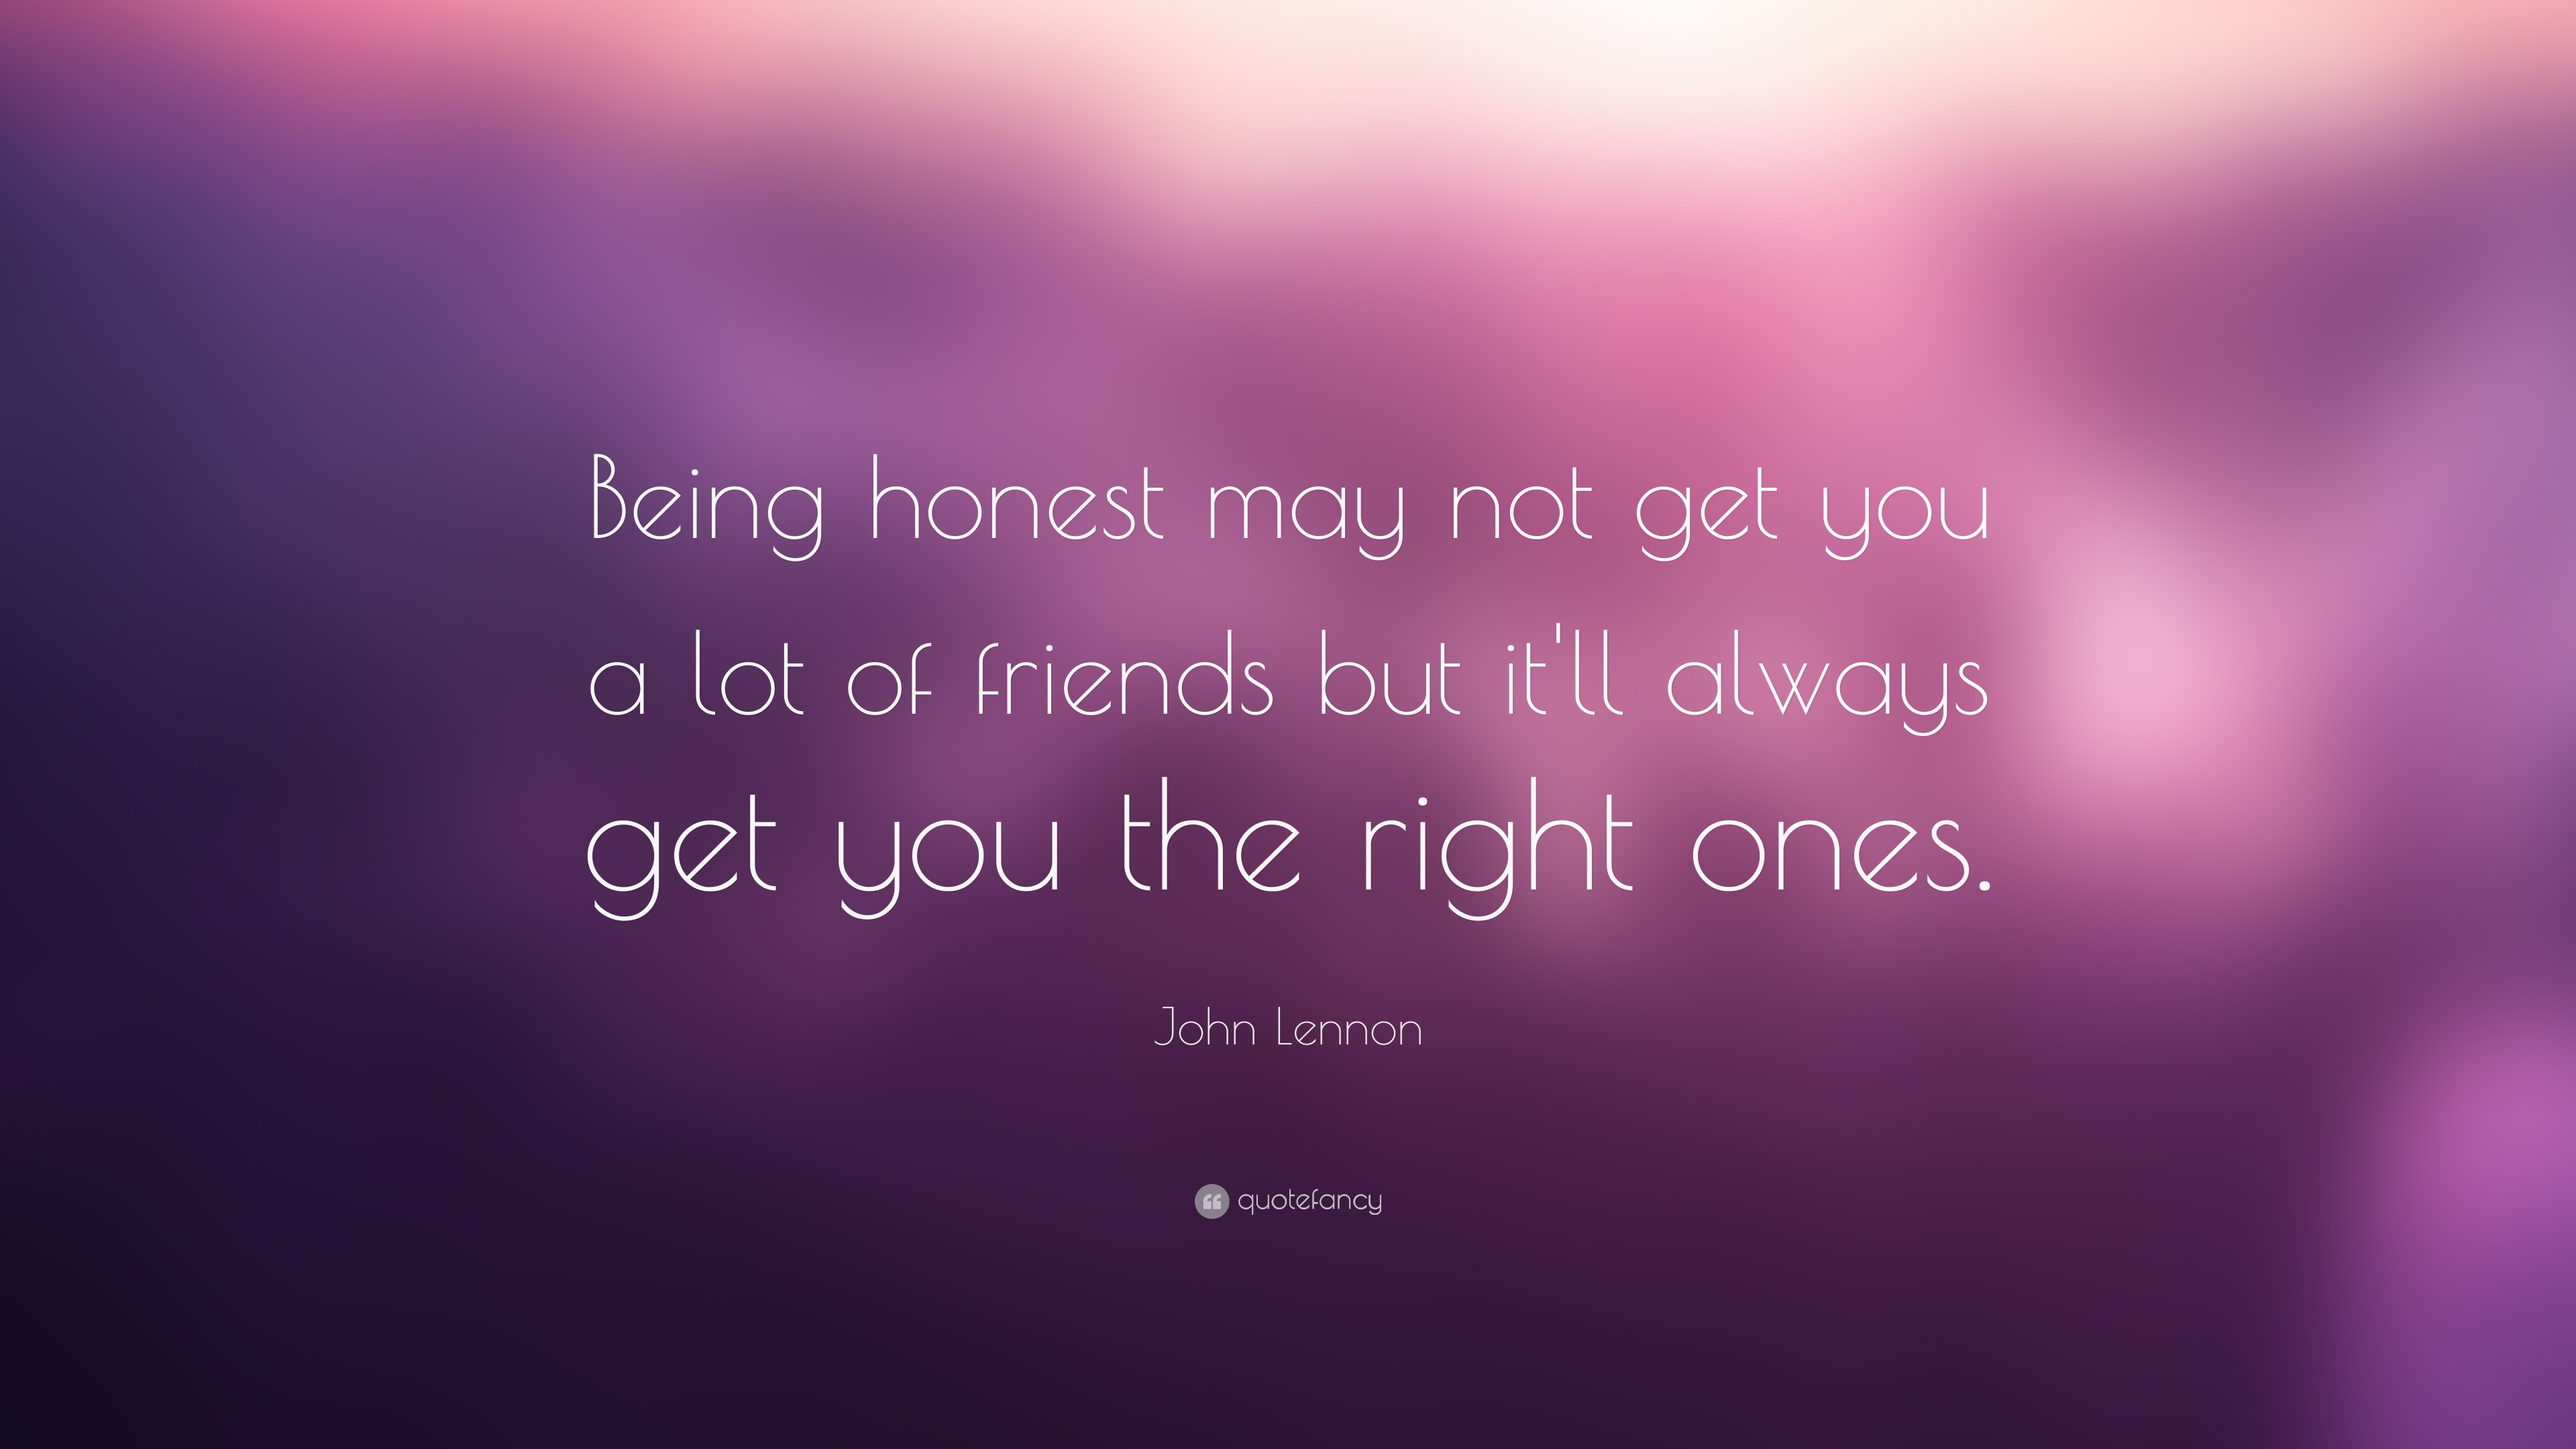 John Lennon Quote: Being honest may not get you a lot of